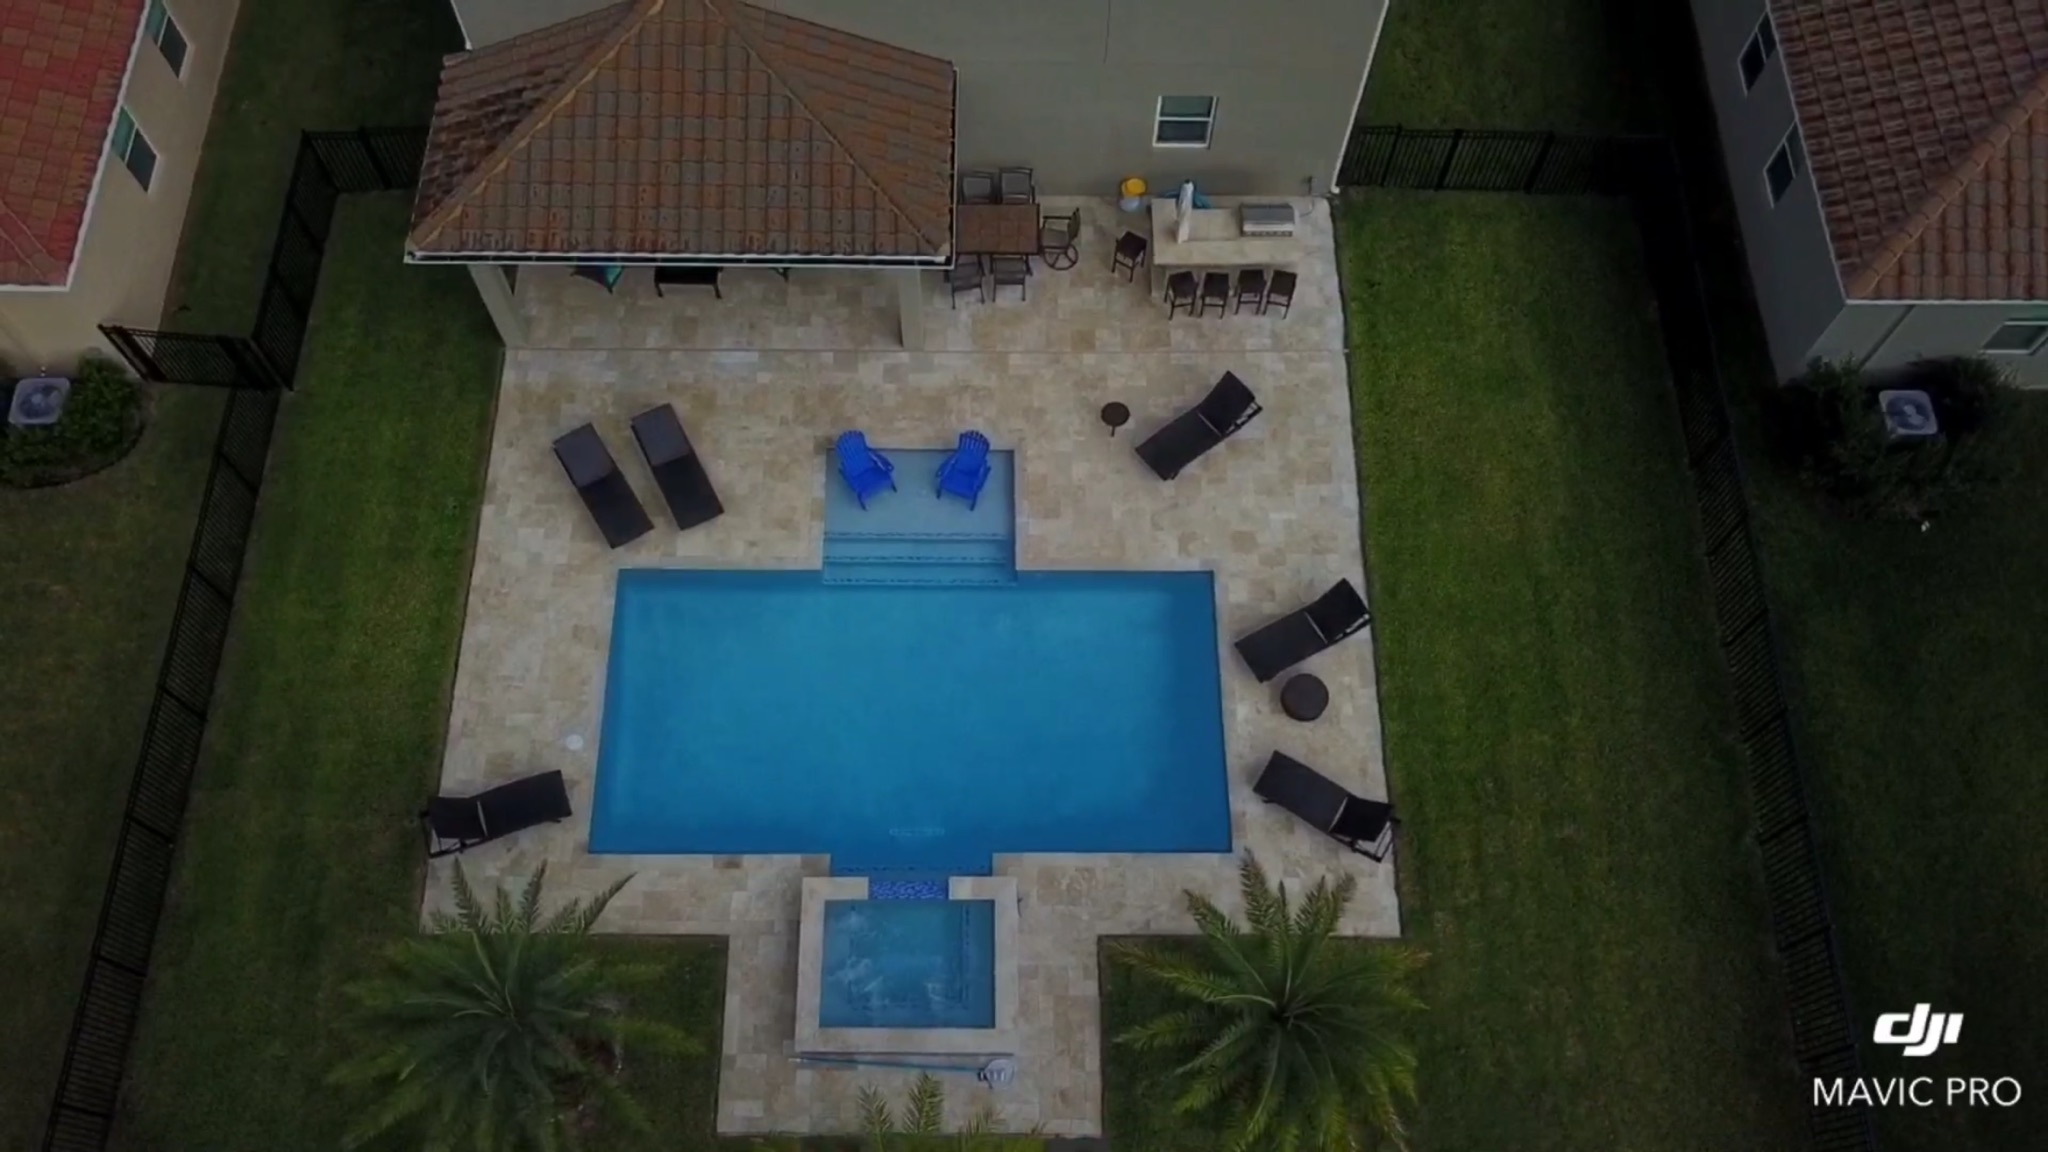 rhr pools oversized steps and spa with area for entertaining